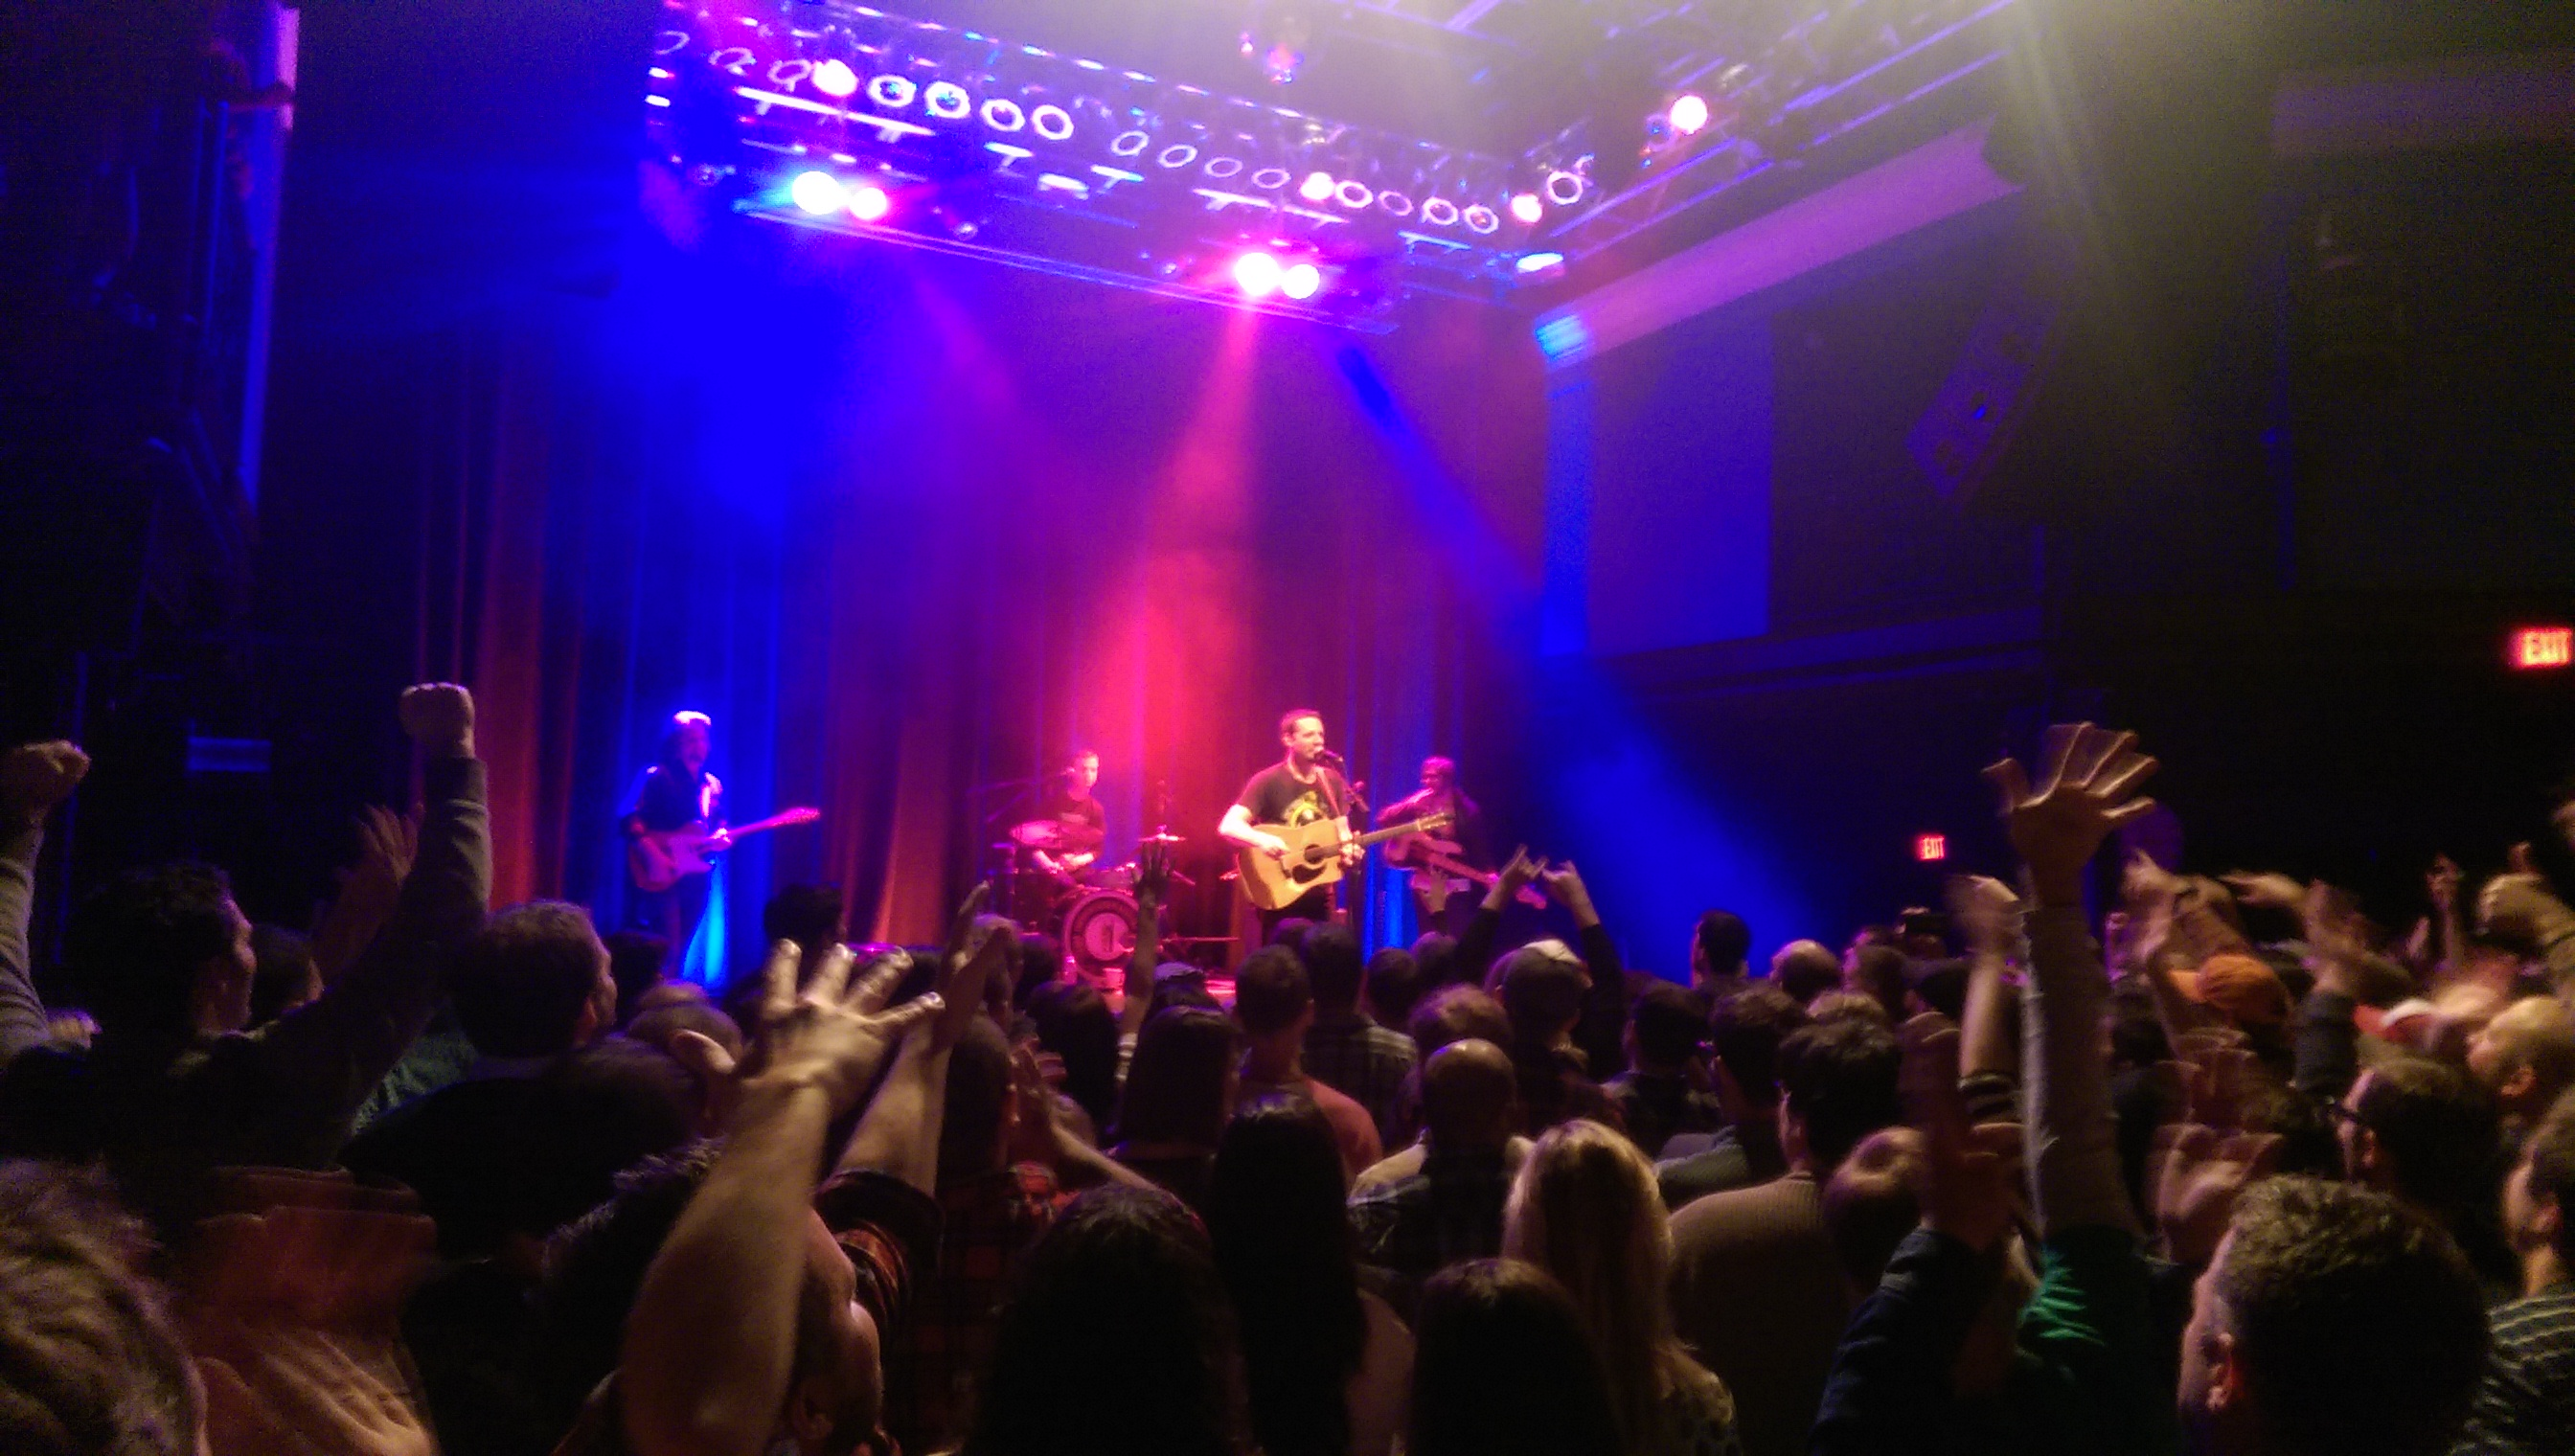 Sturgill Simpson Dc : why sturgill simpson is suddenly famous or a concert review from the 9 30 club last friday ~ Hamham.info Haus und Dekorationen